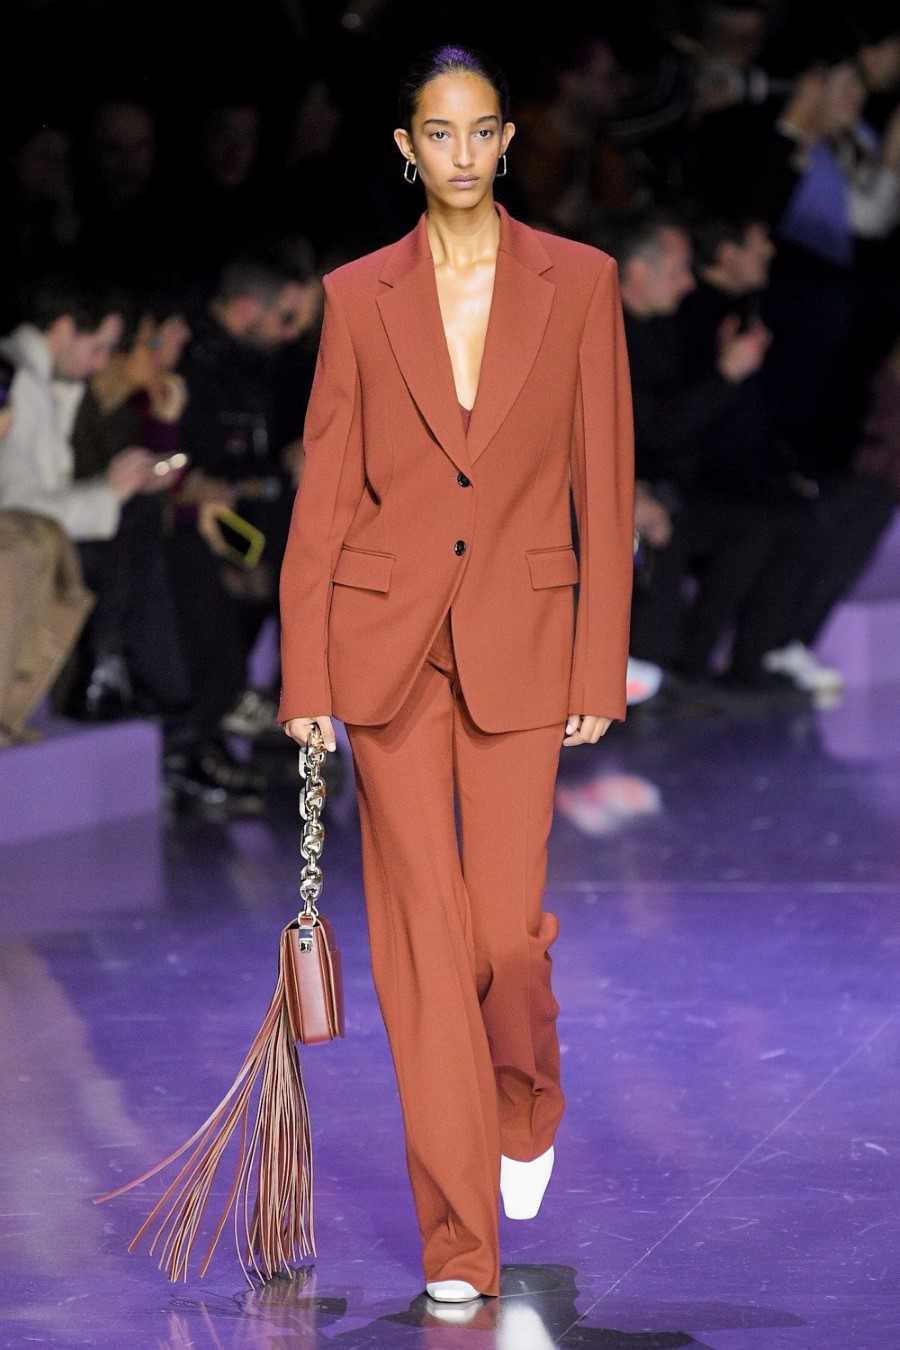 BOSS - Fall Winter 2020 - Milan Fashion Week